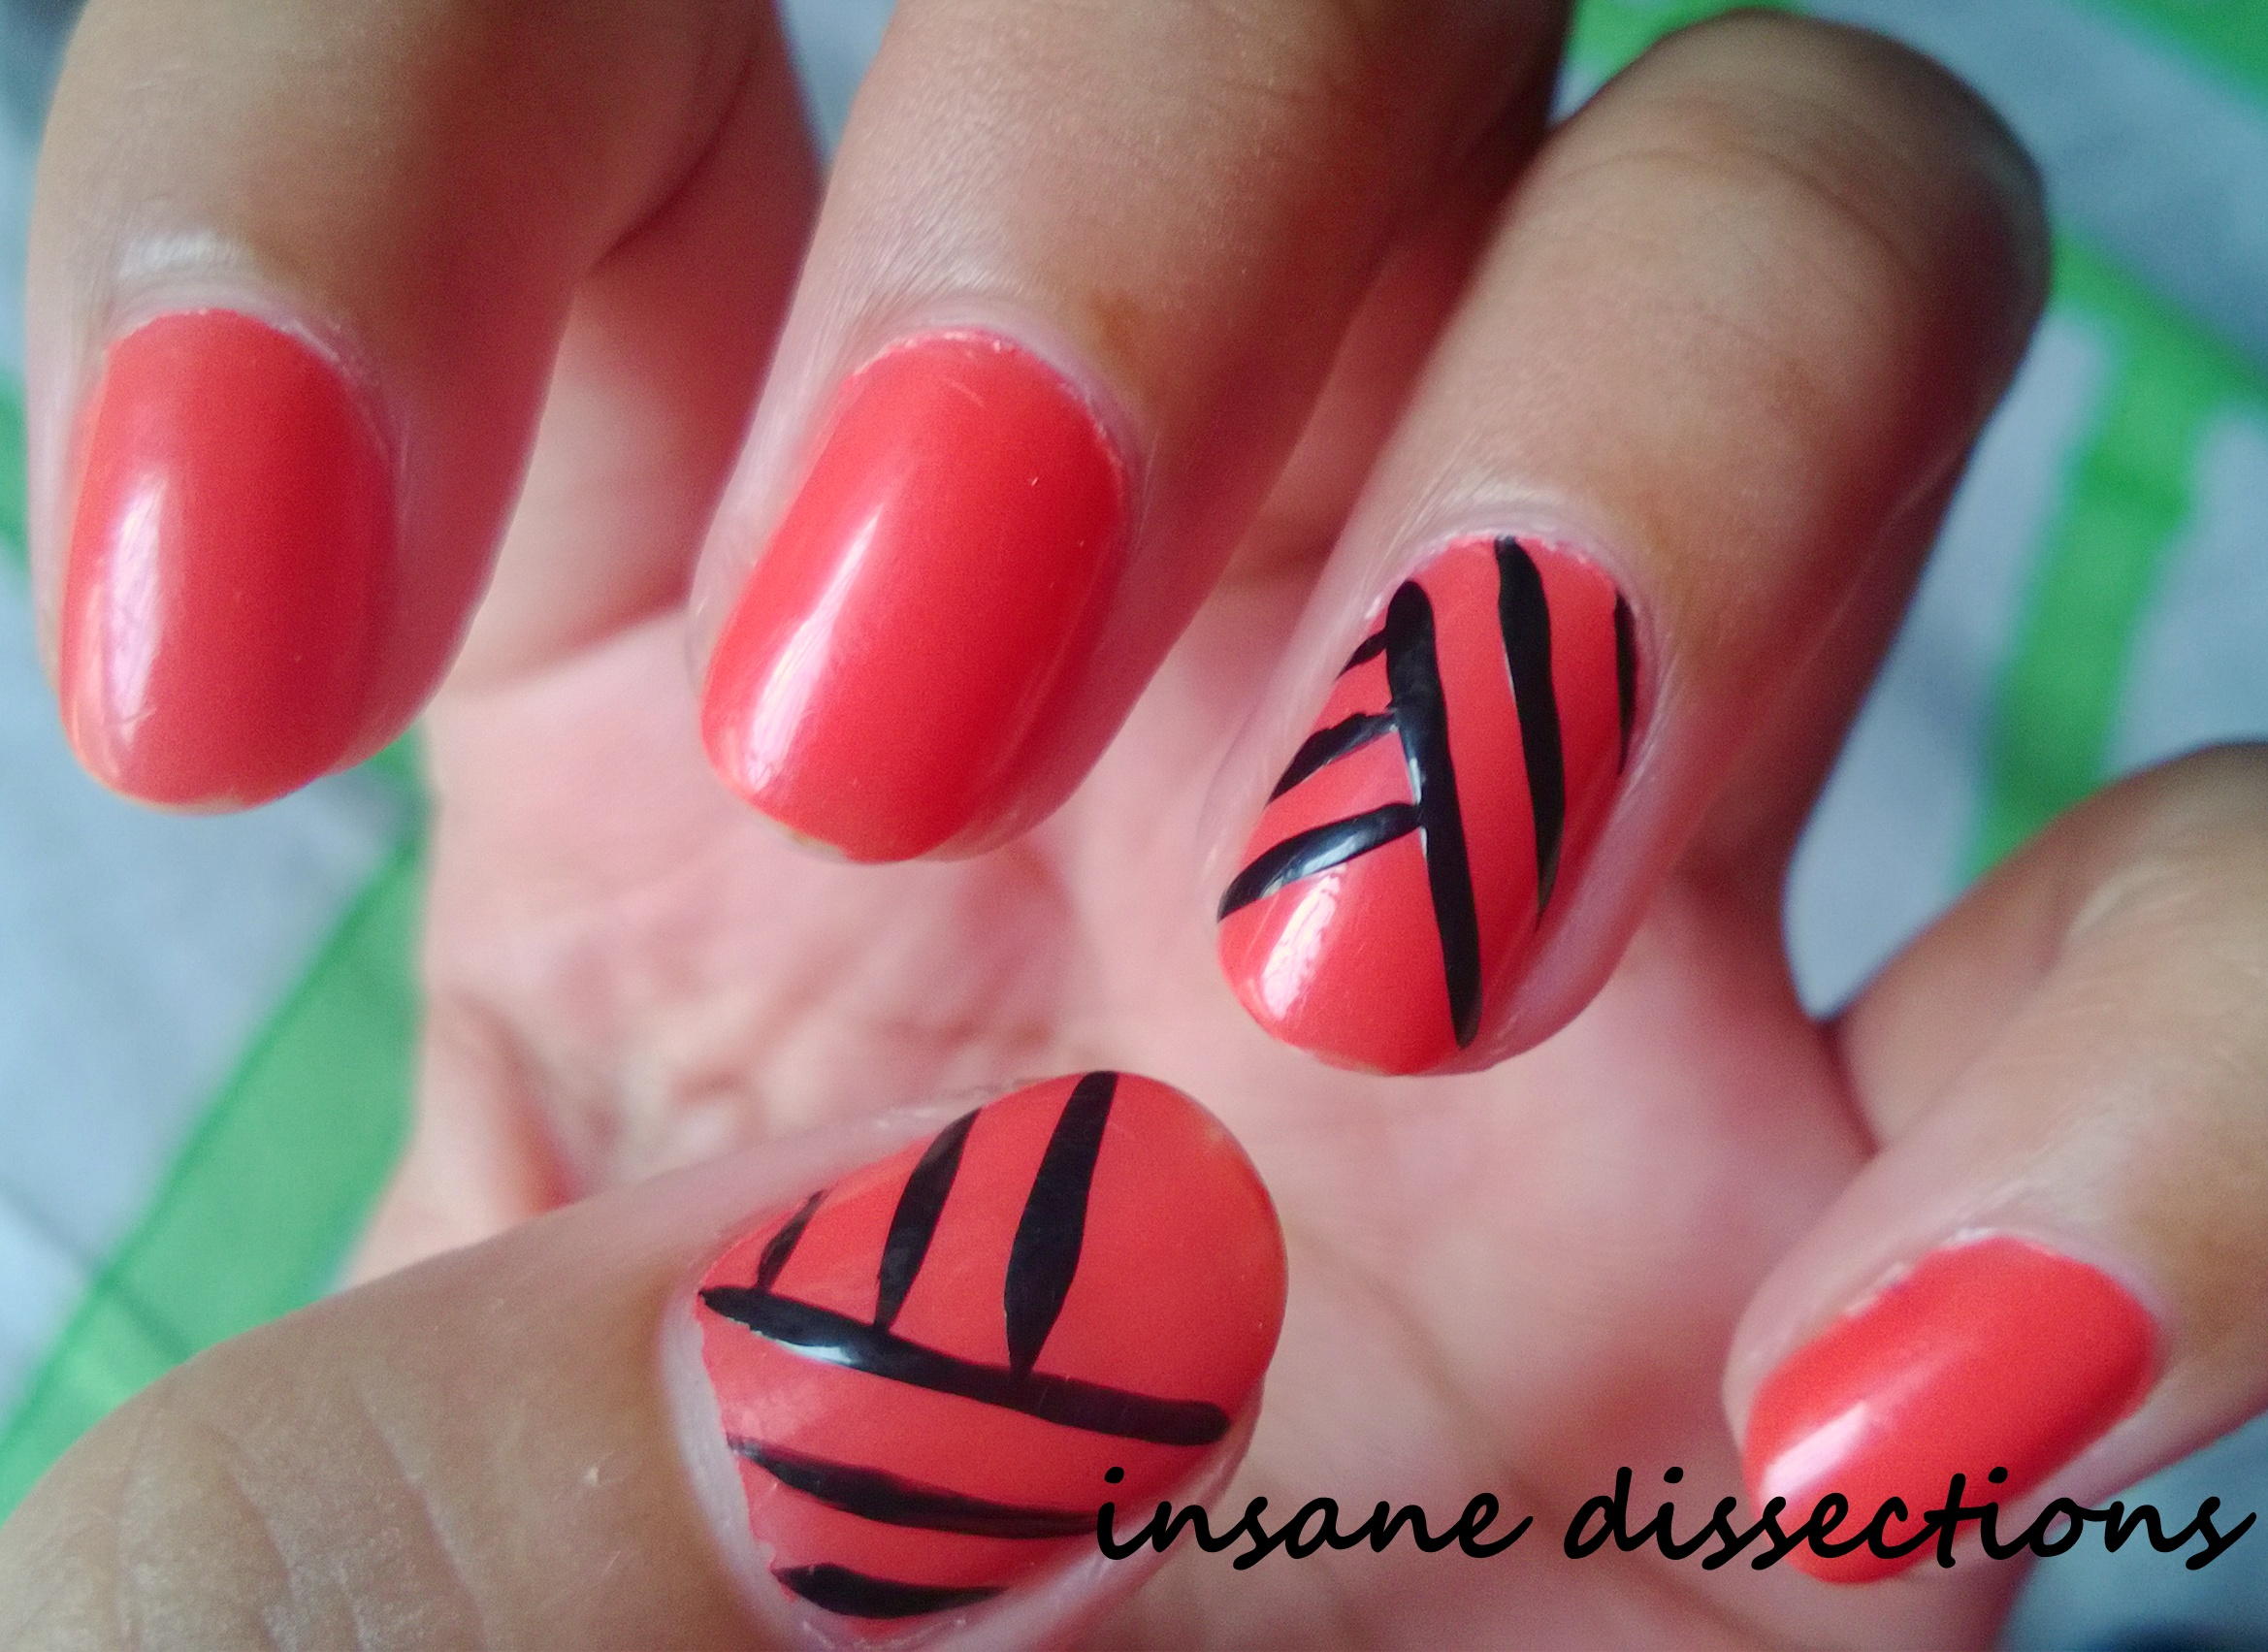 Accent Nail Art Insane Dissections